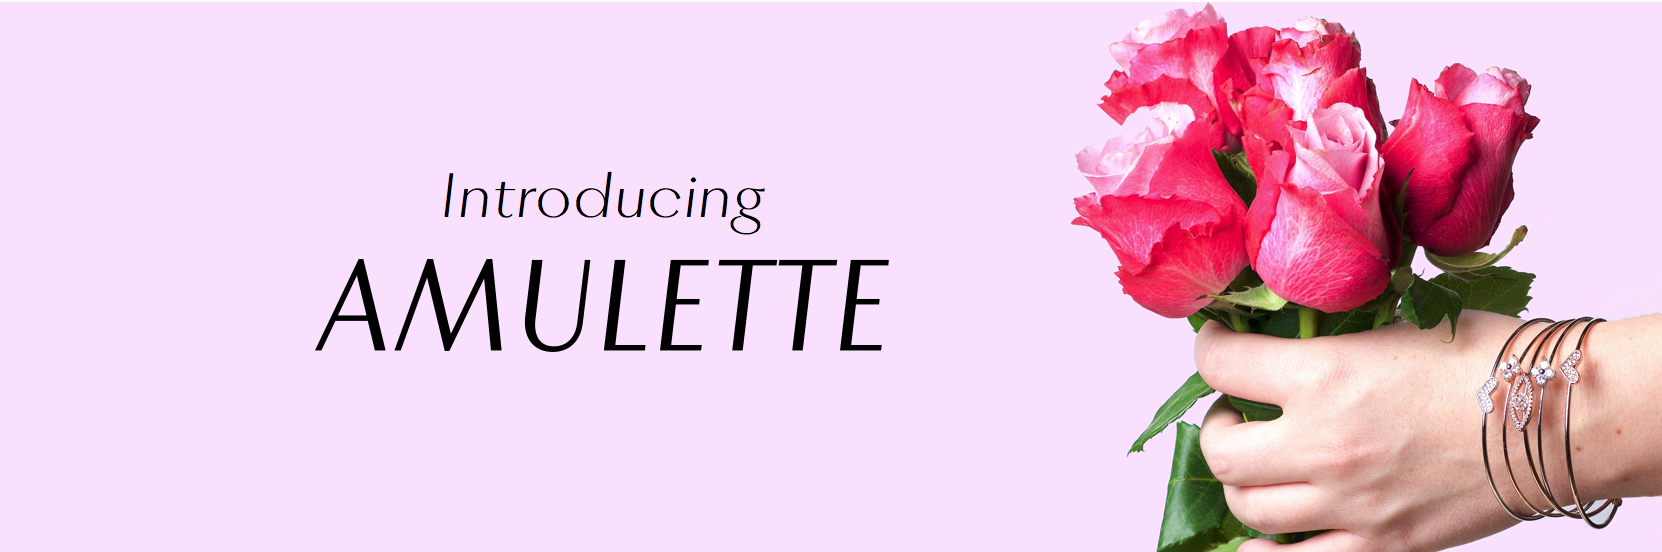 Introducing Amulette